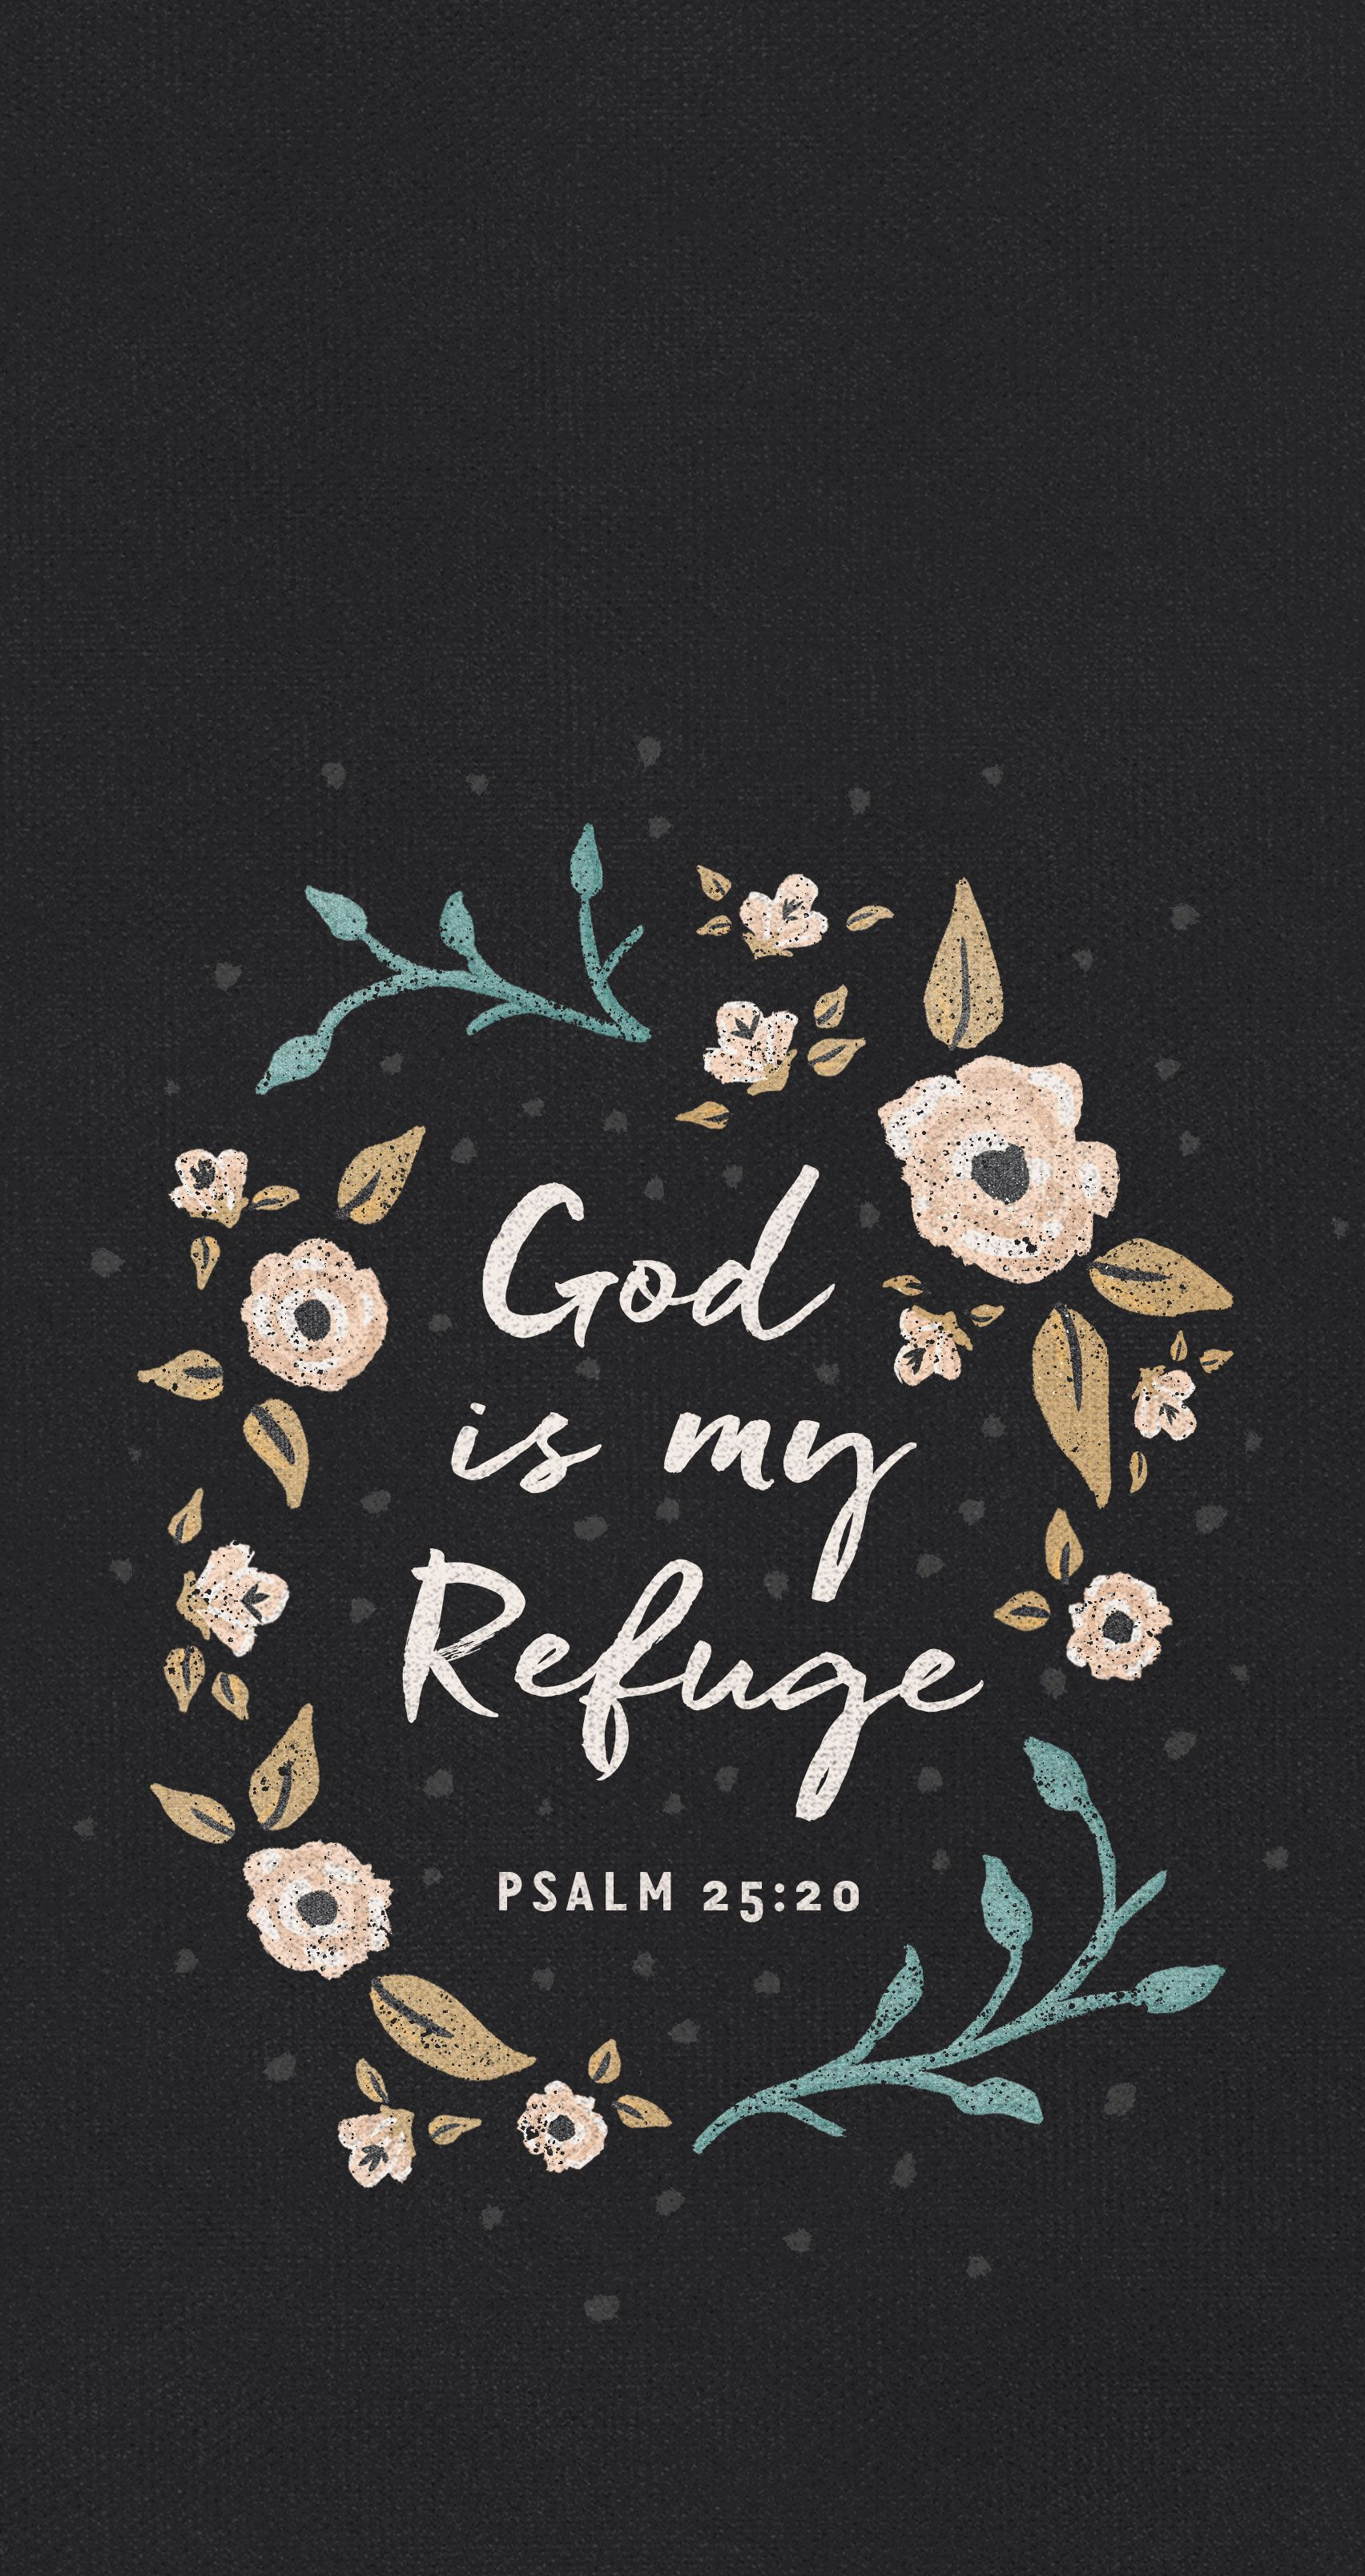 Wallpaper iphone god - God Is My Refuge Mobile Wallpaper